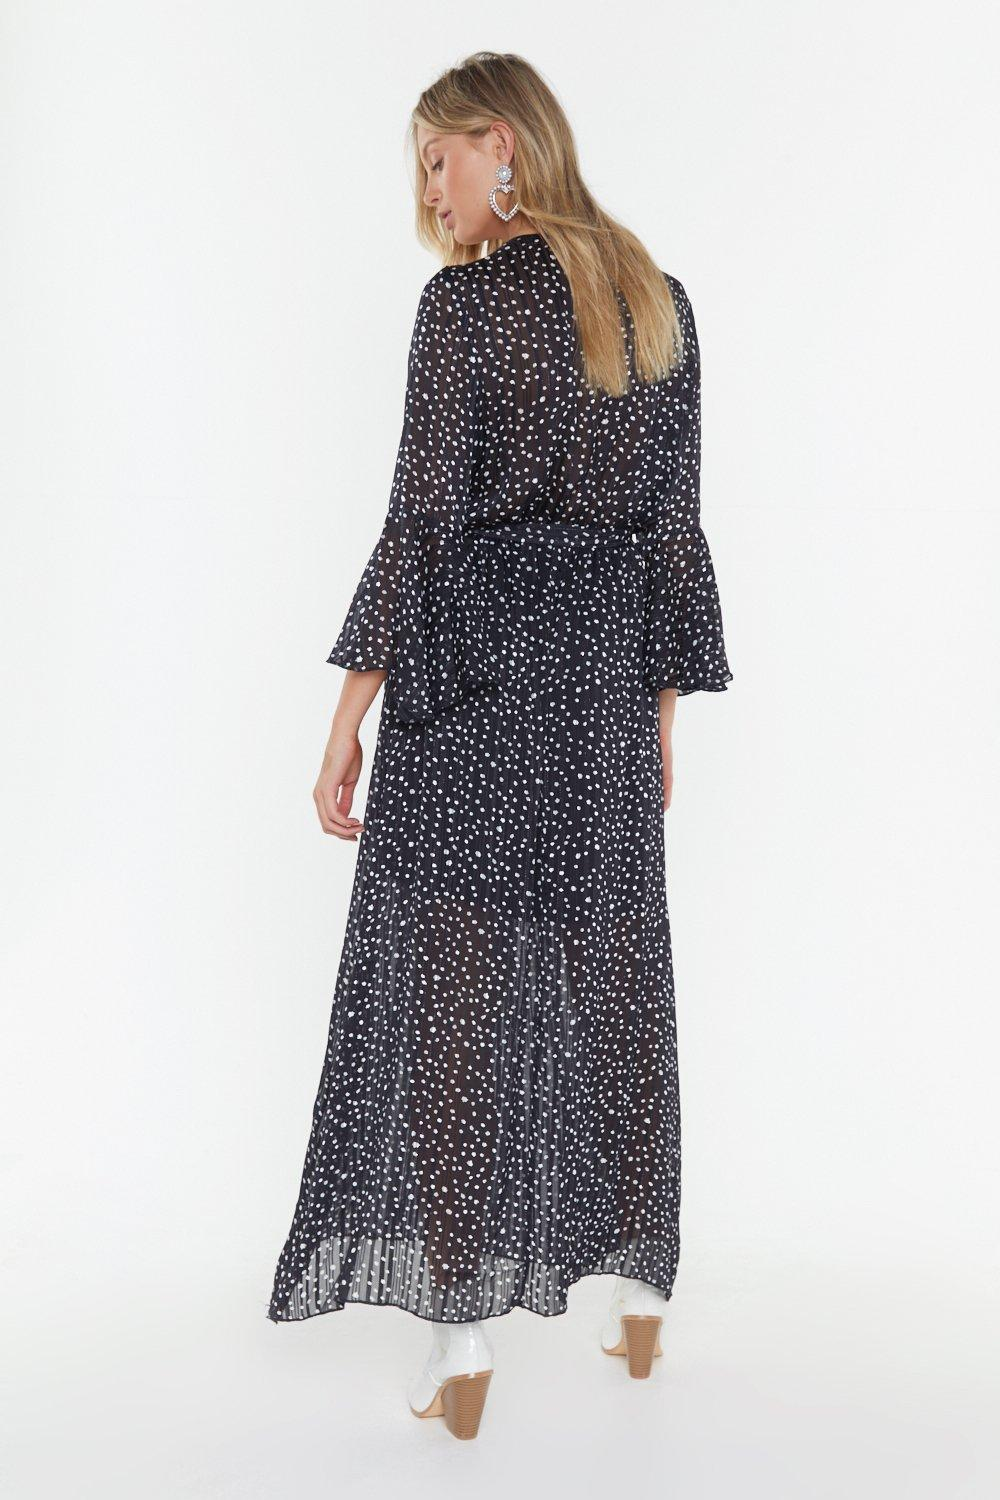 dcfa426fcab71 Dot Your Number Spotty Maxi Dress | Shop Clothes at Nasty Gal!